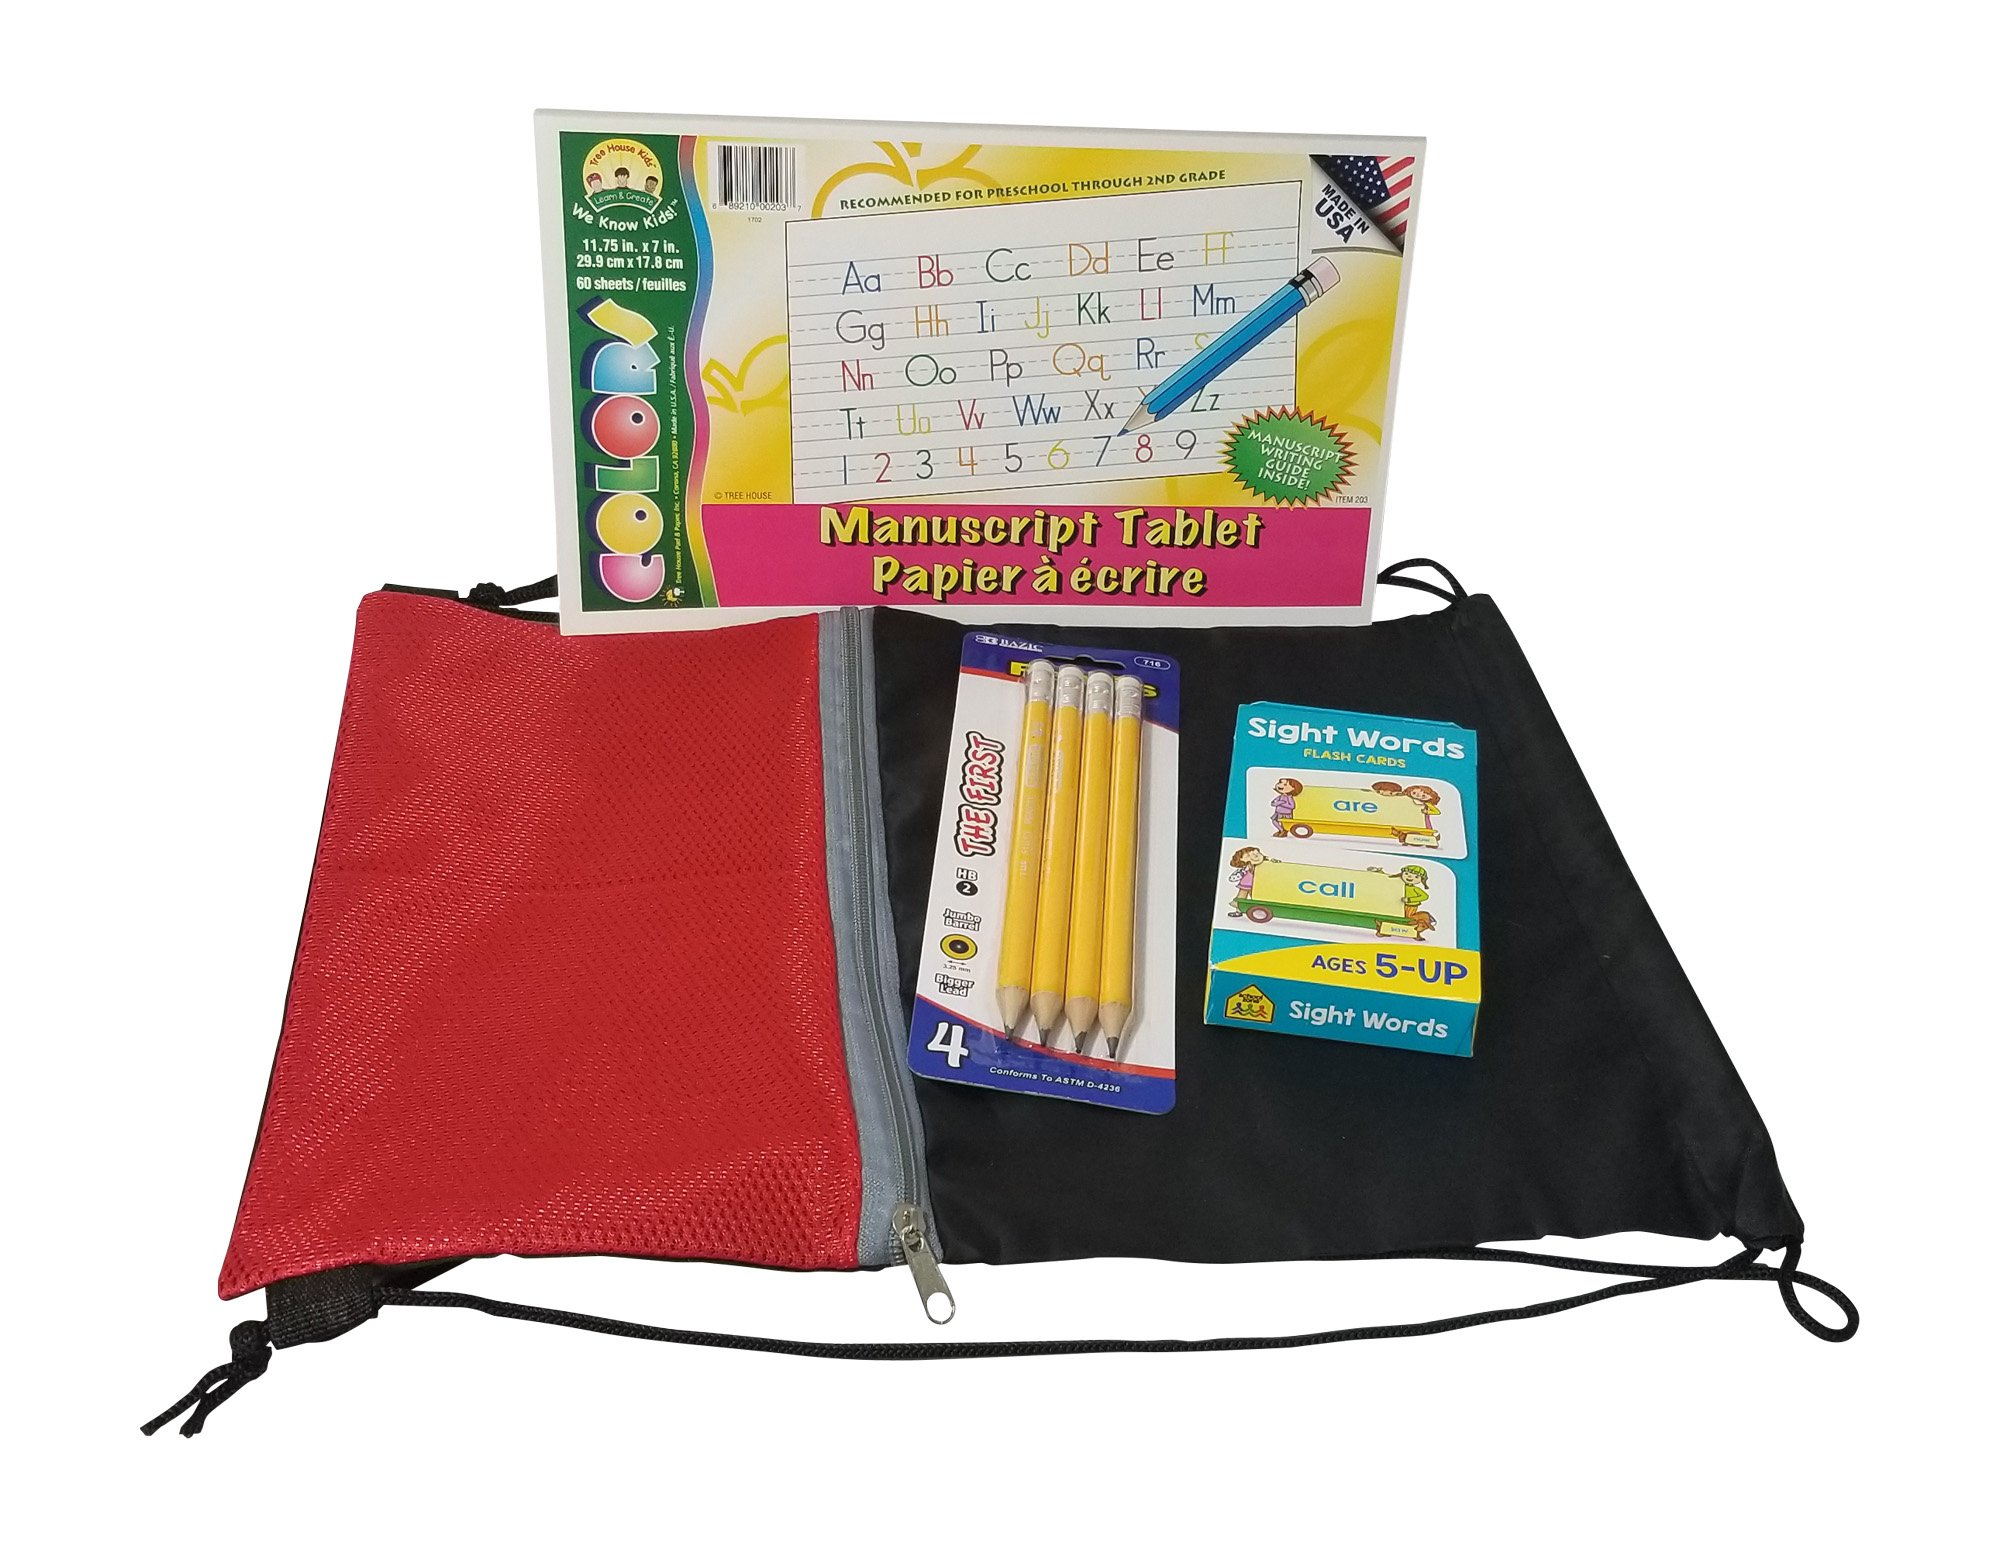 Early Elementary Learning Bundle Includes Jumbo Writing Pencils, Manuscript Writing pad, Sight Word Flash Cards, and Drawstring Storage Bag